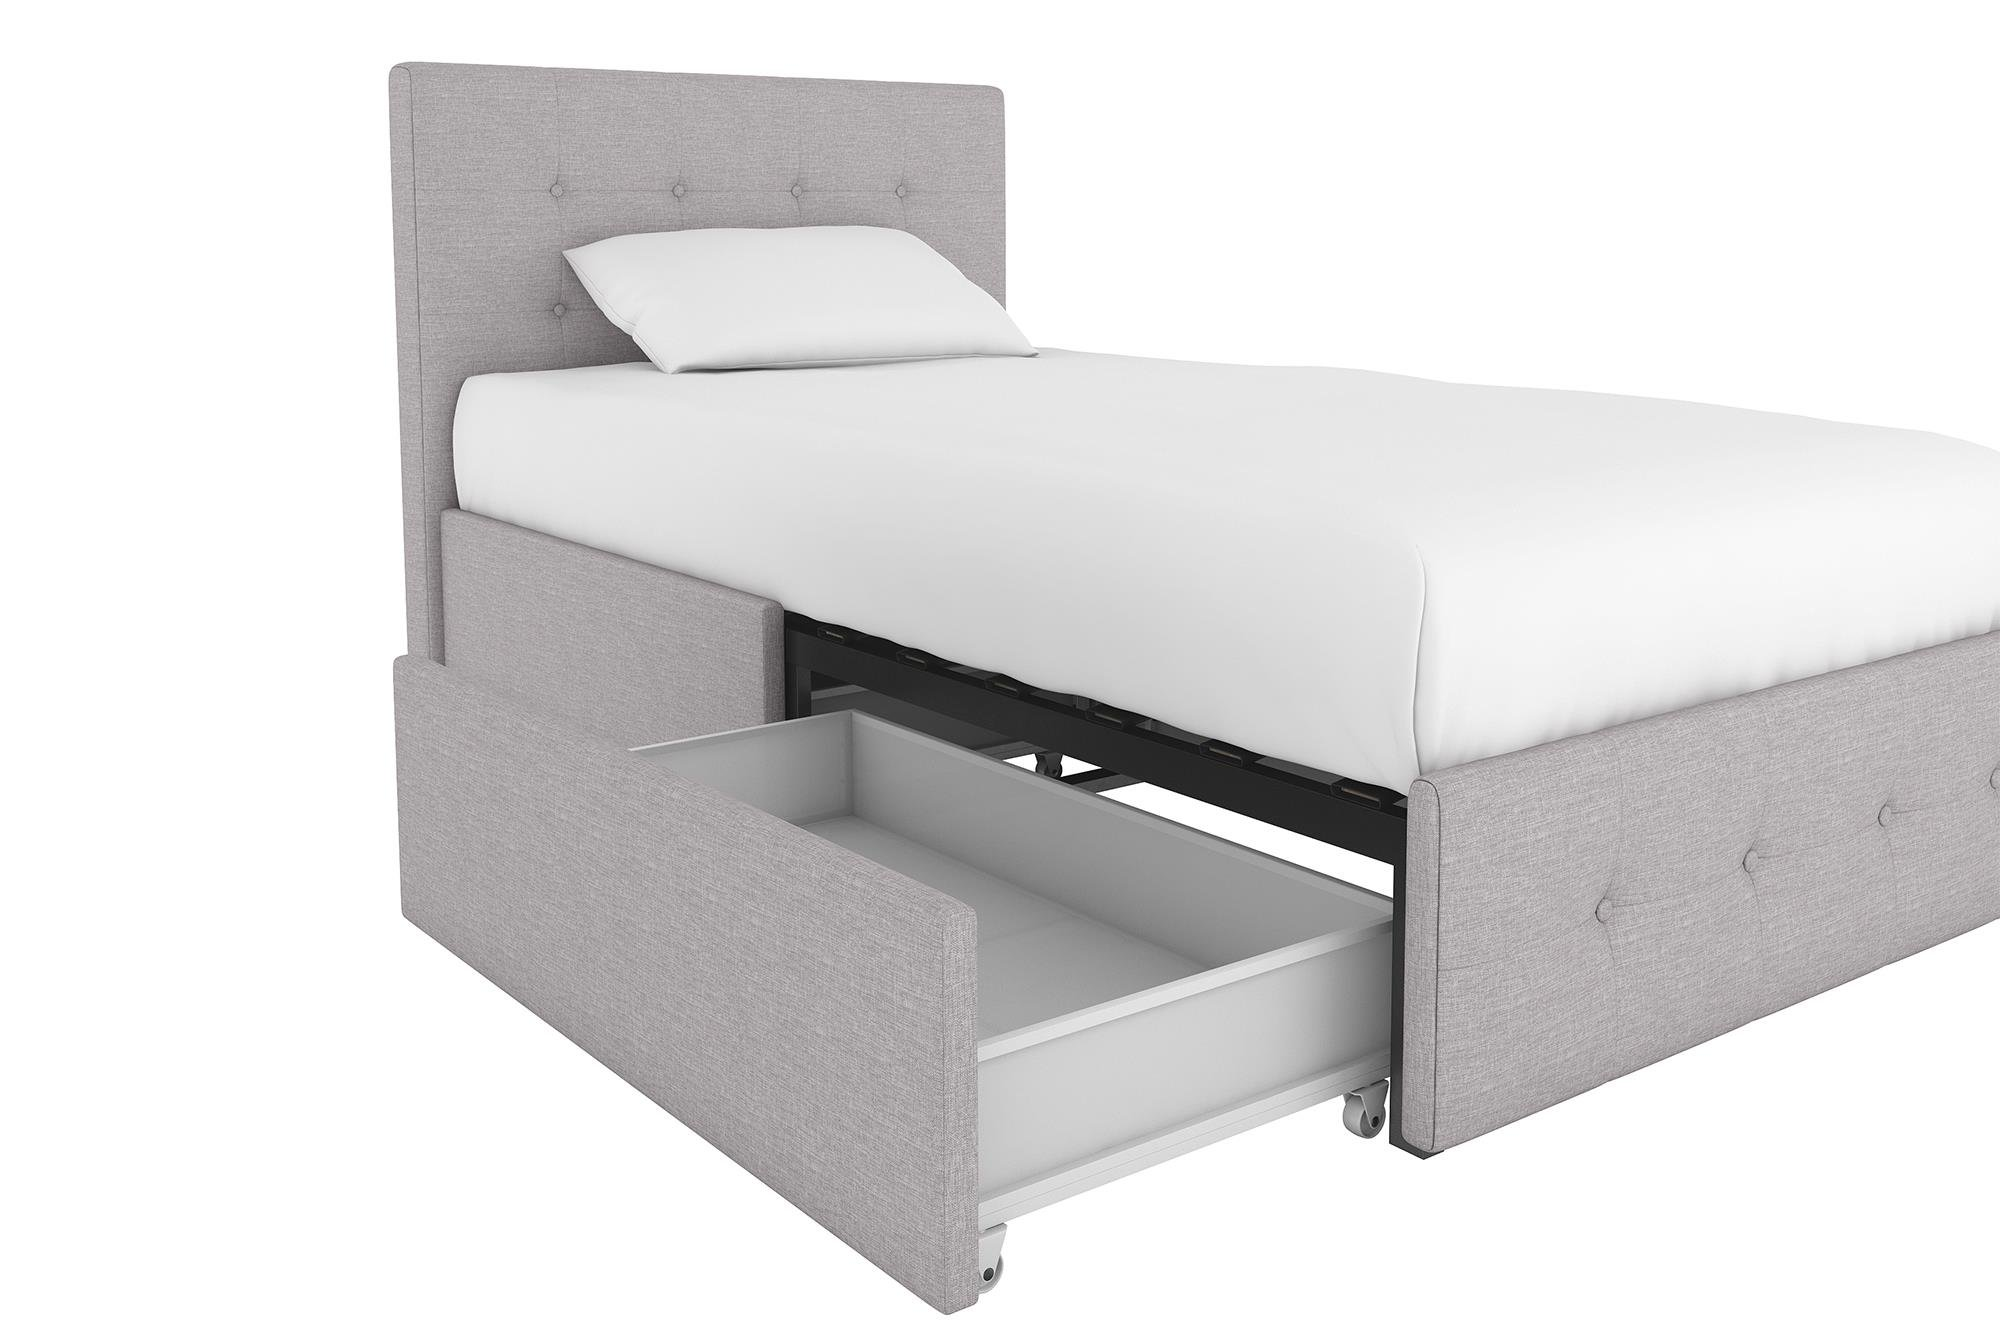 Rose Upholstered Bed with Storage, Grey Linen, Twin by DHP